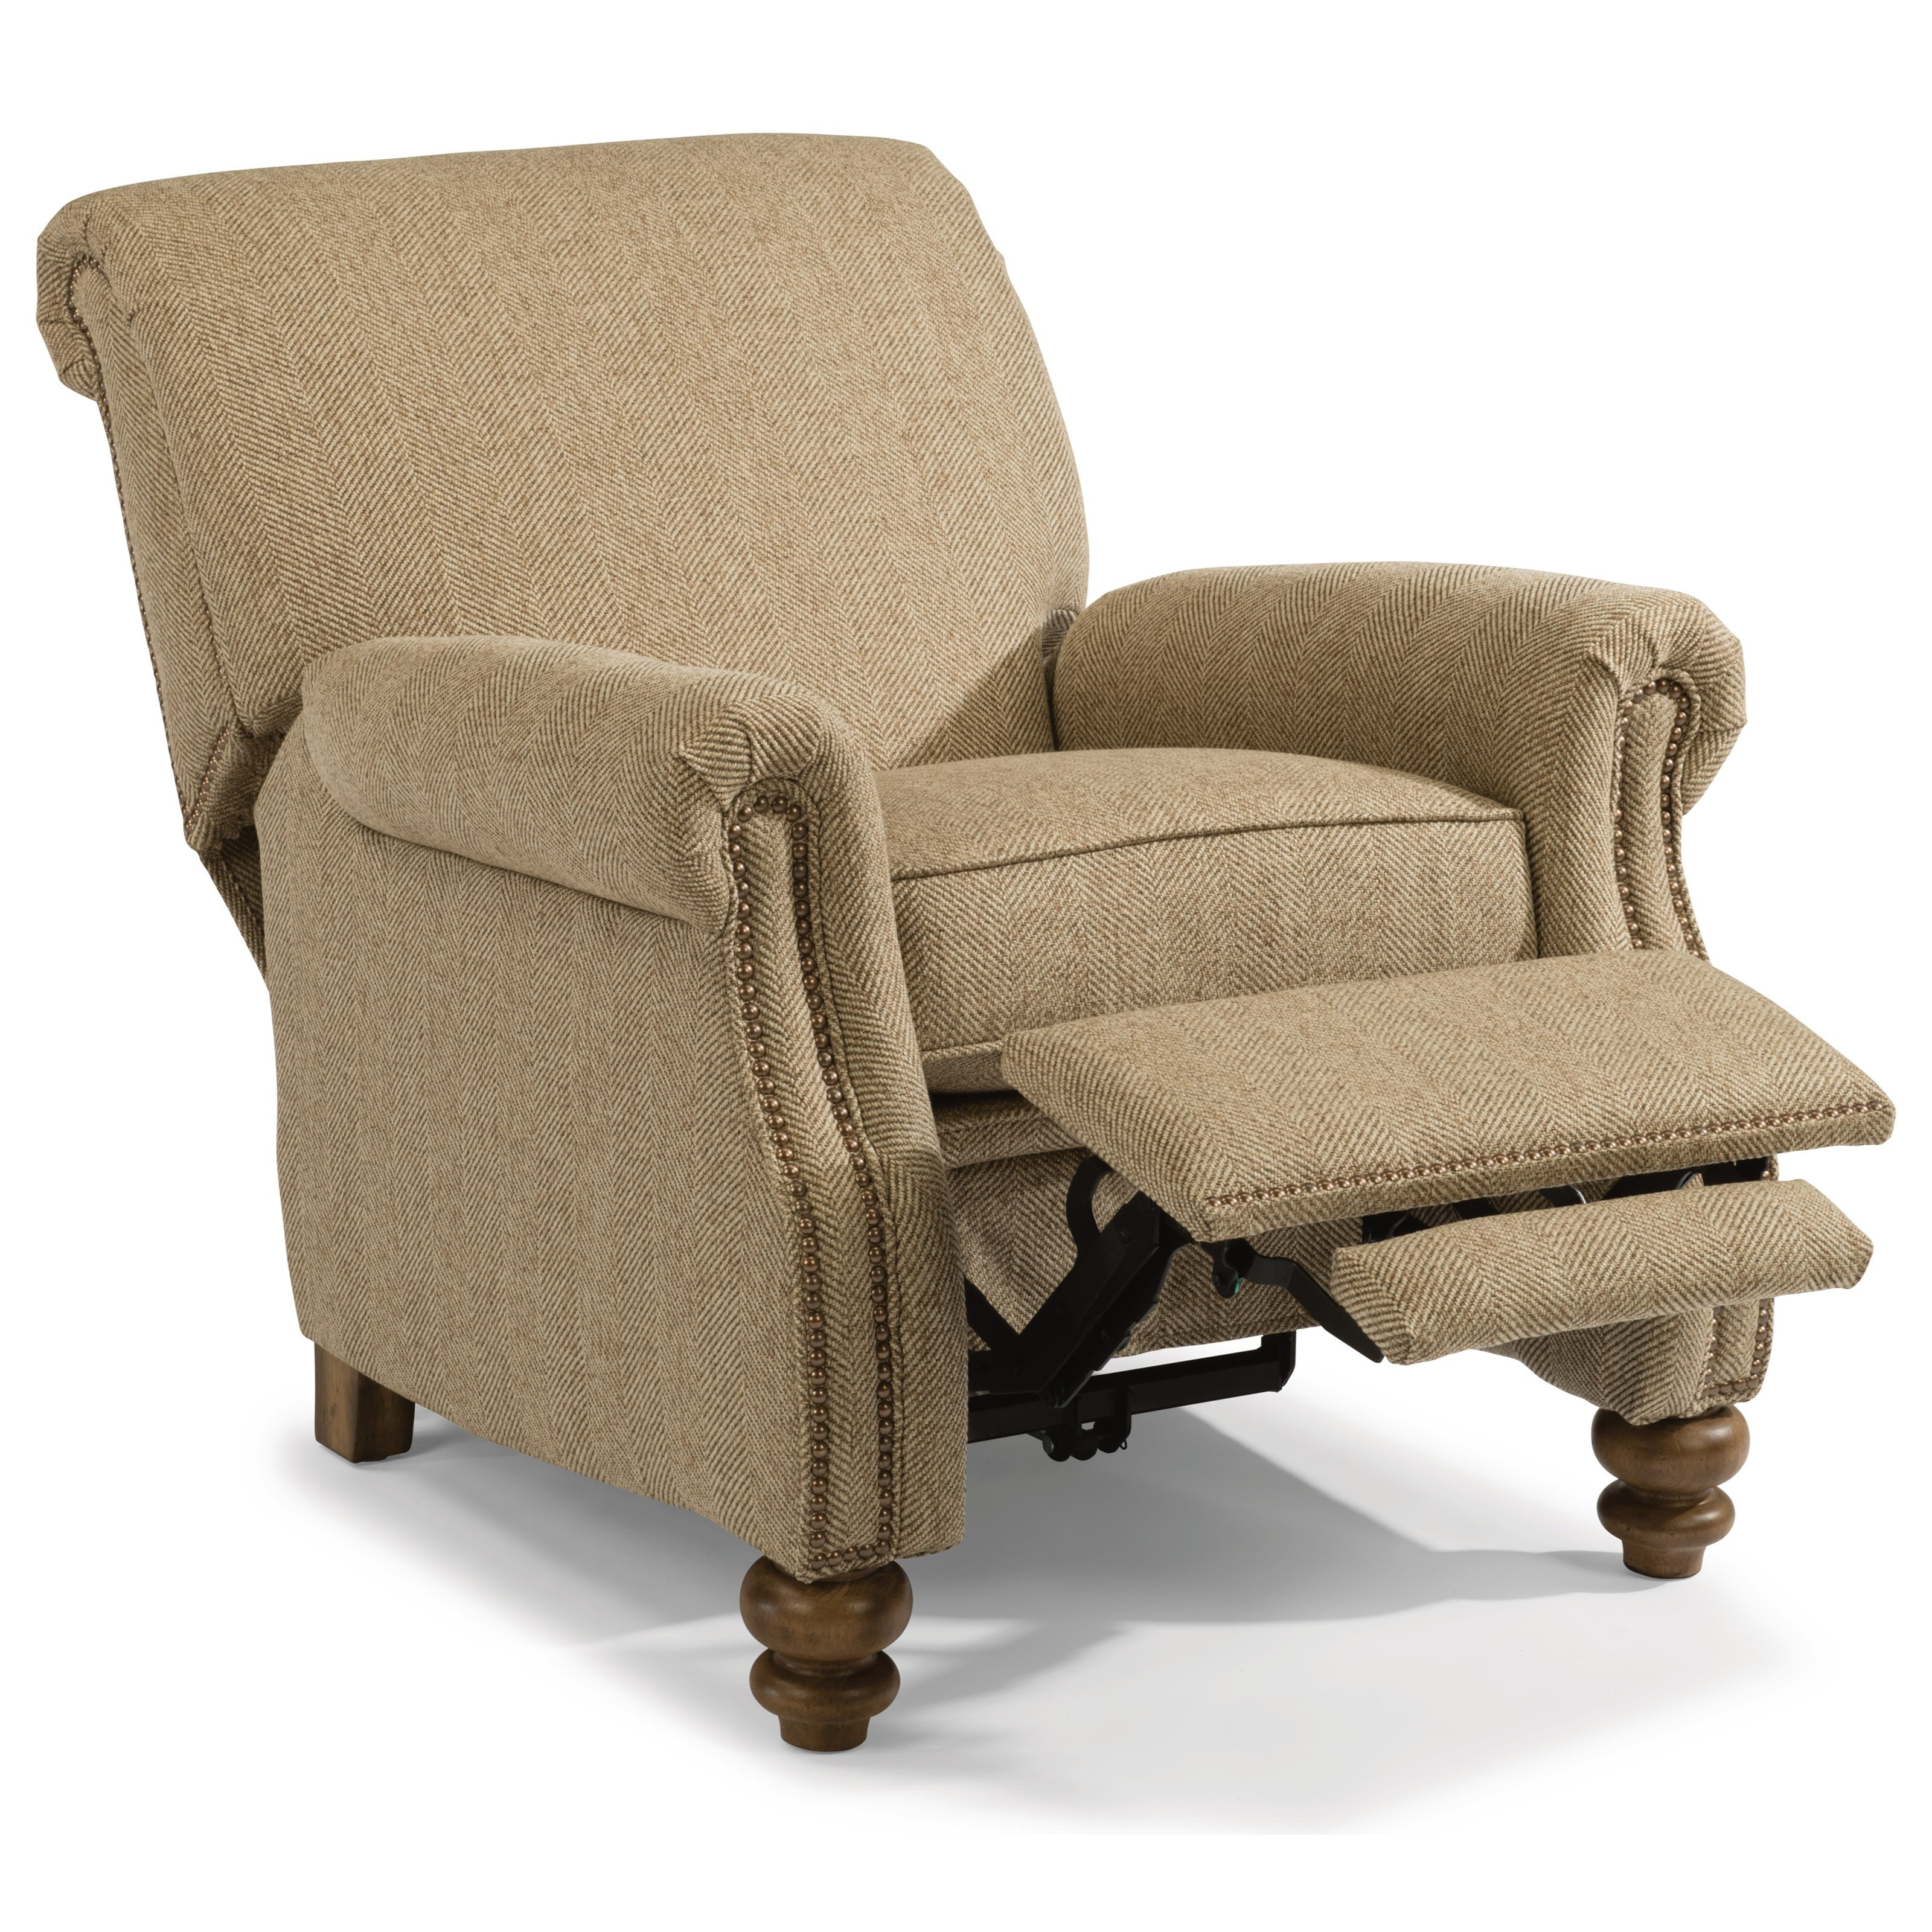 Bay Bridge High Leg Recliner by Flexsteel at Mueller Furniture